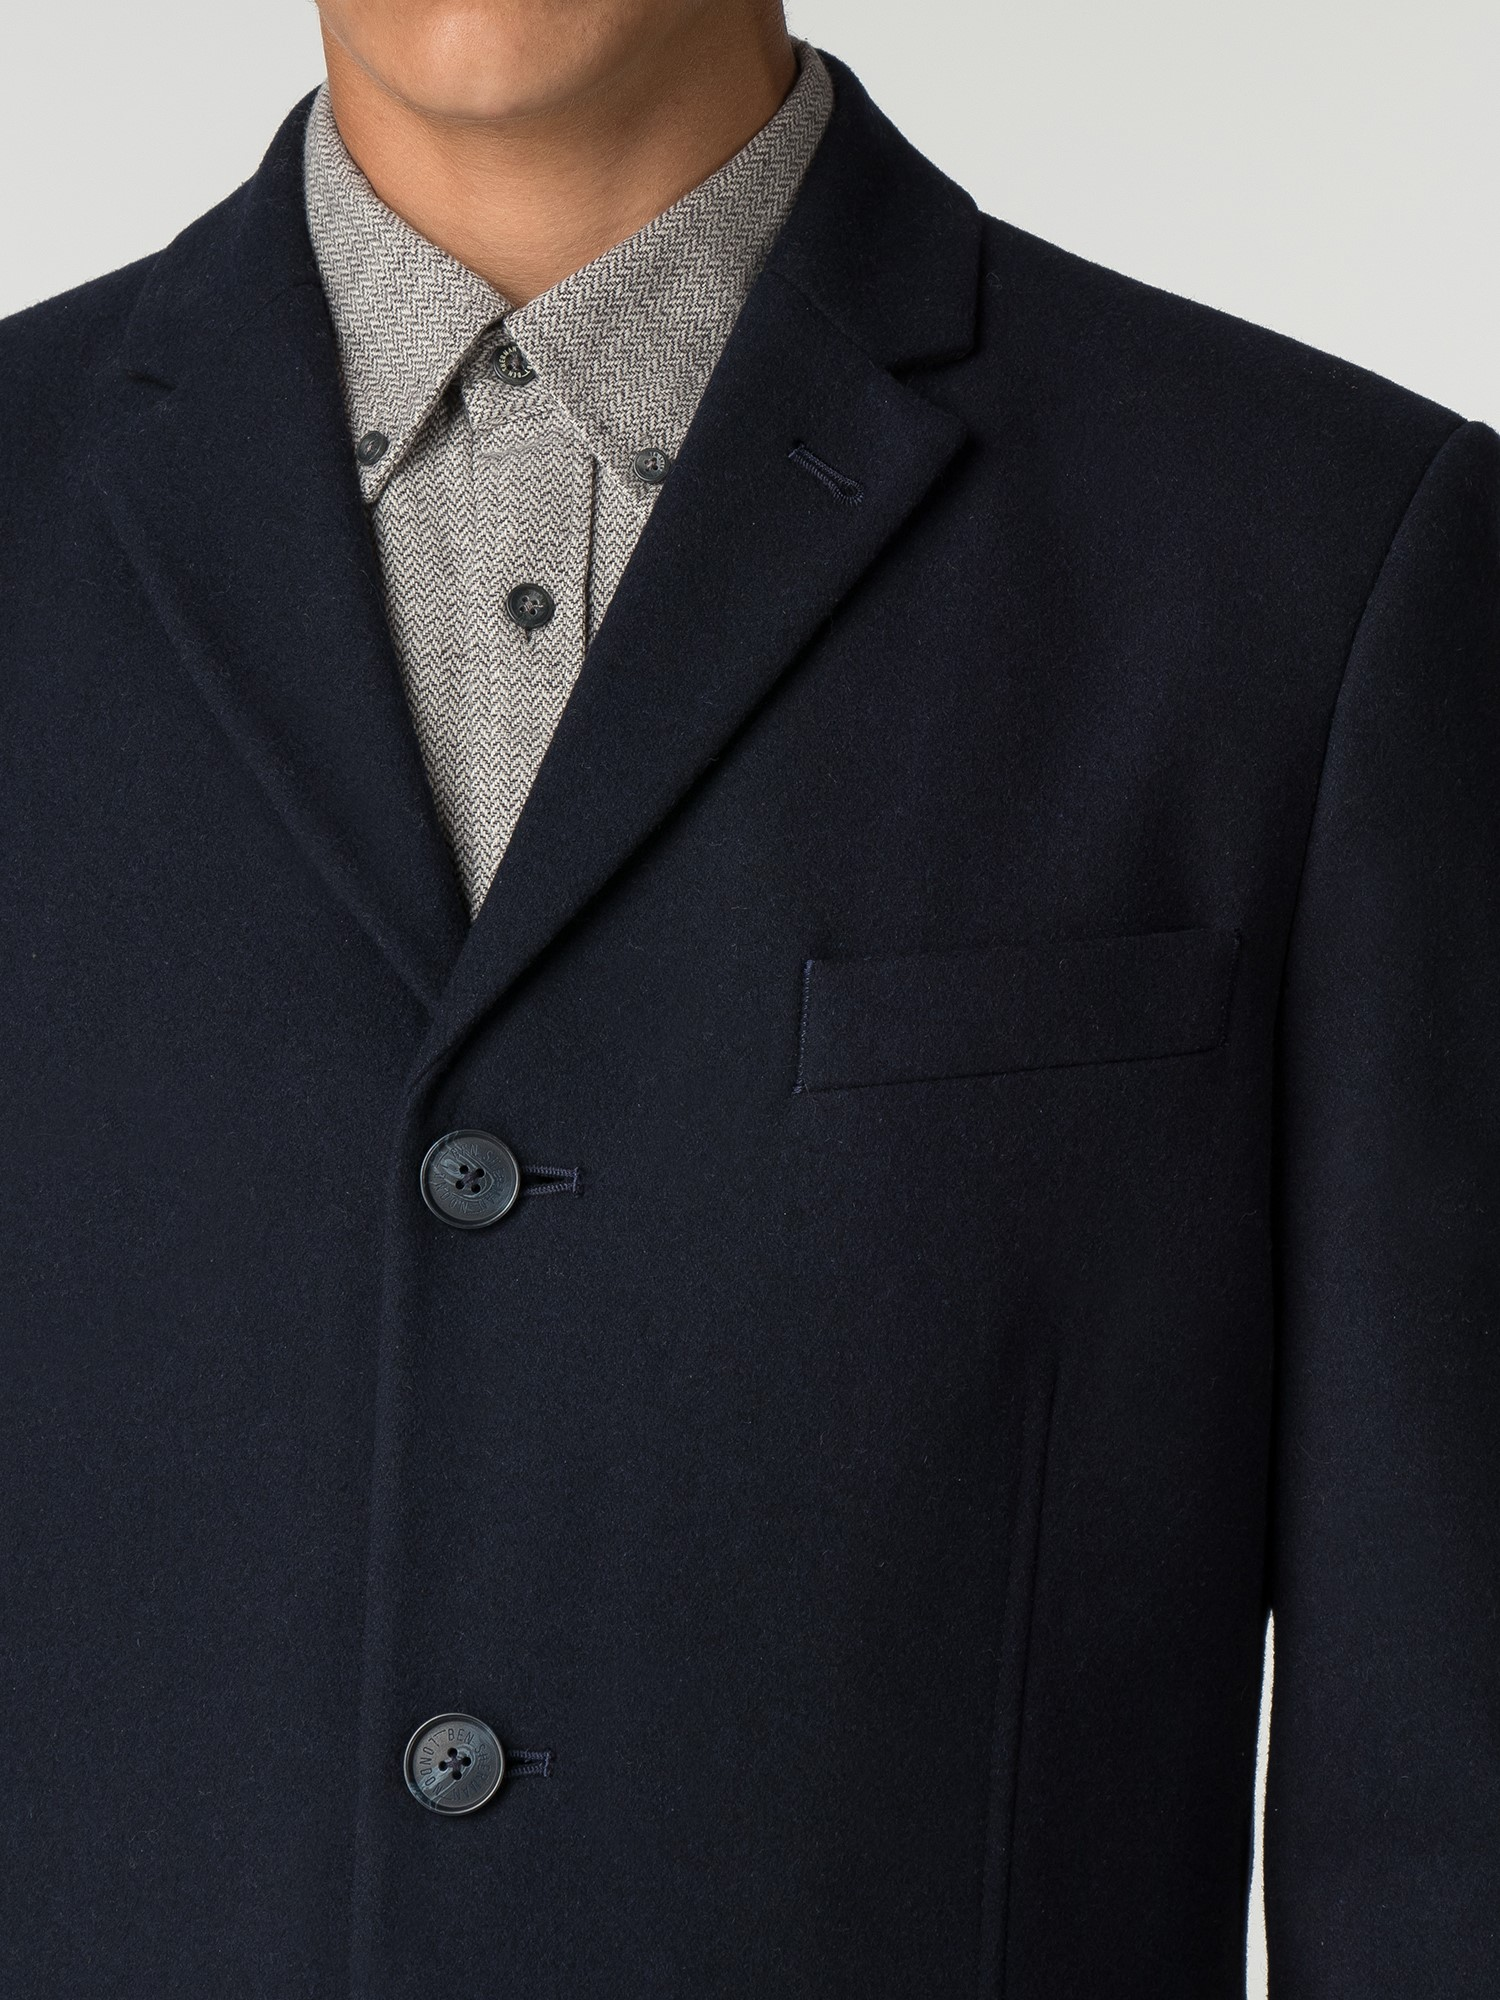 Men S Navy Blue Tailored Coat Ben Sherman Est 1963